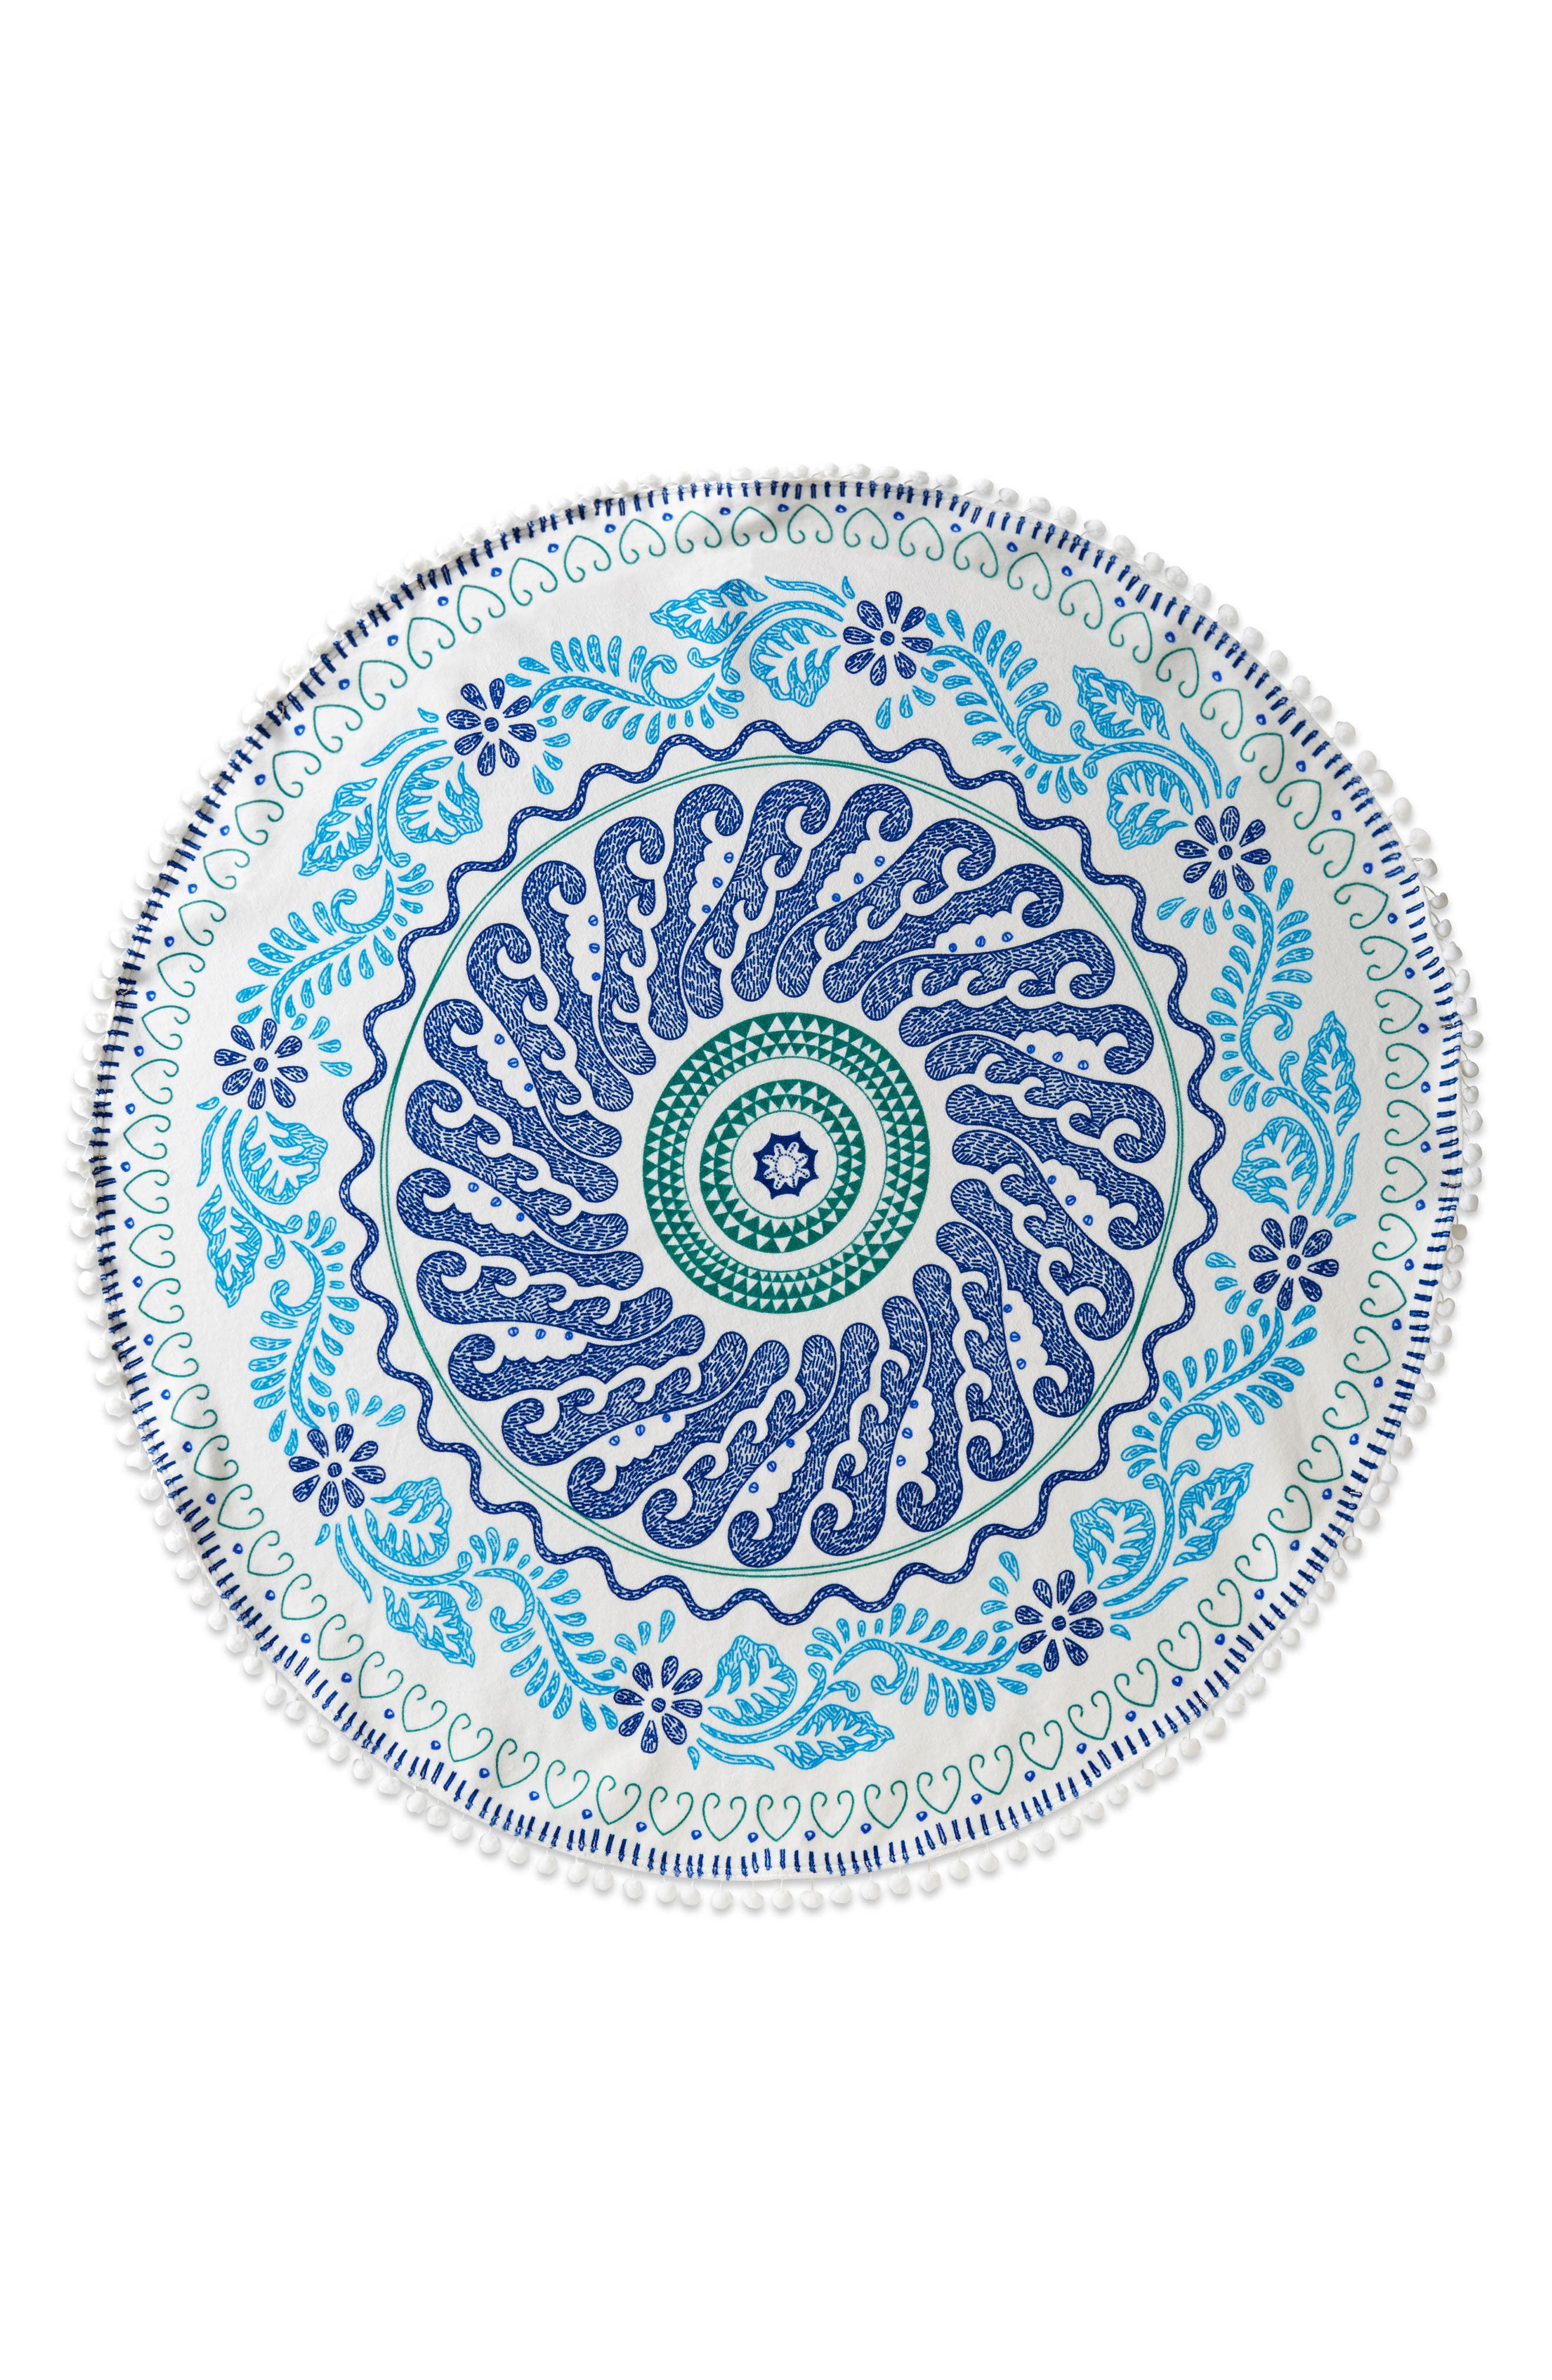 Cita Round Resort Towel,                         Main,                         color, 400